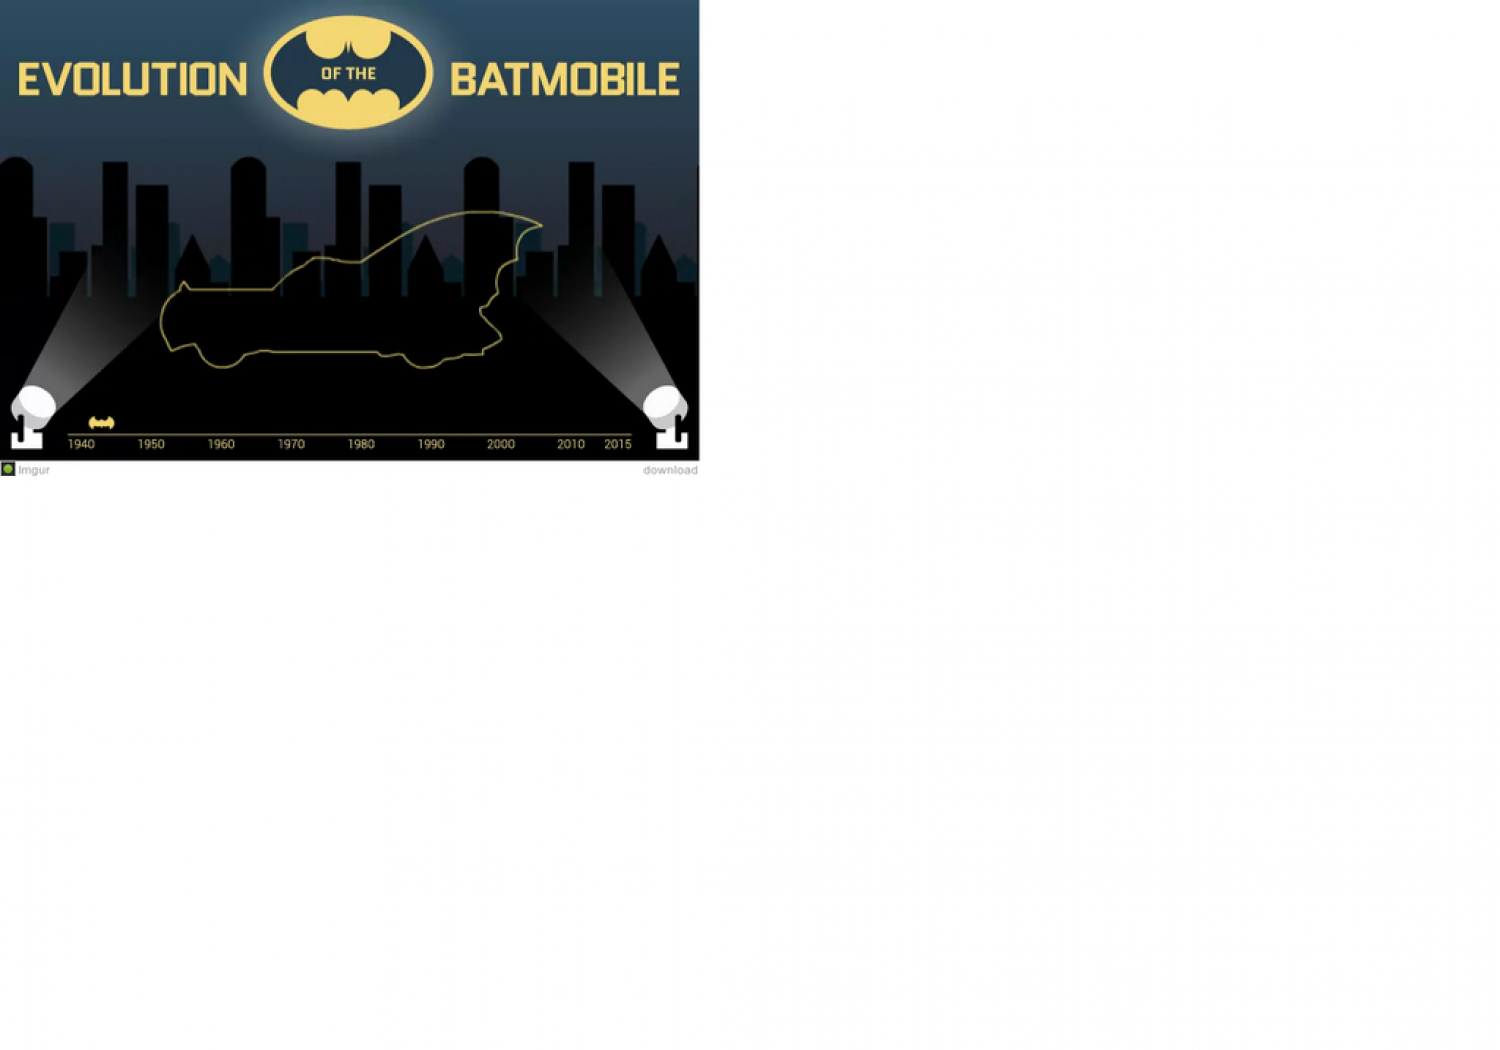 The Evolution Of The Batmobile Infographic